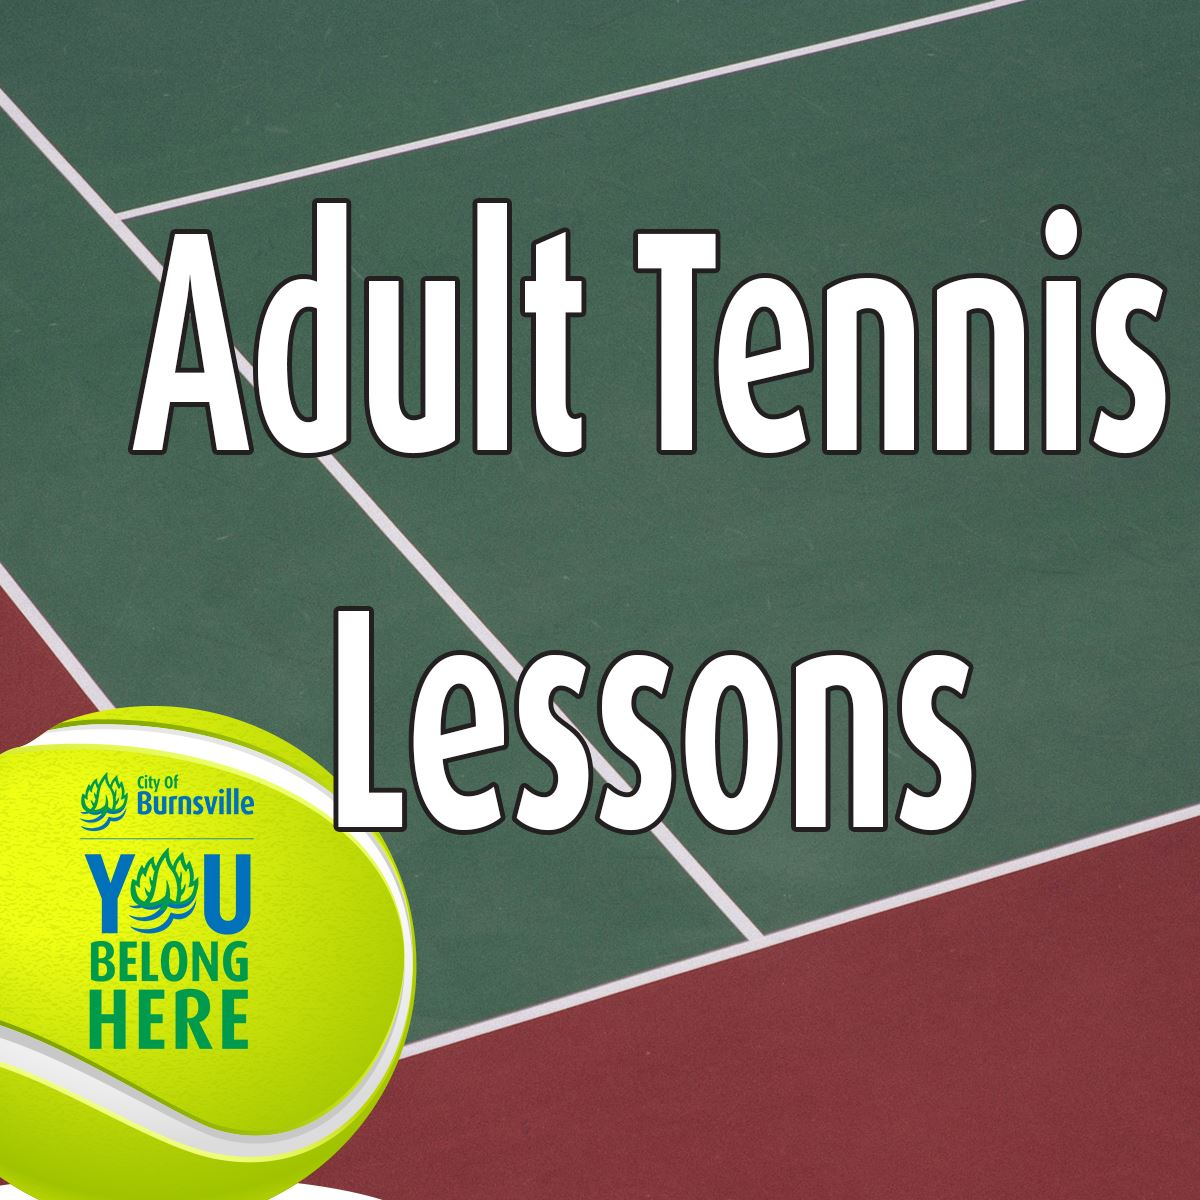 Tennis court with large tennis ball in left bottom corner. Text Adult Tennis Lessons 7 week sessions